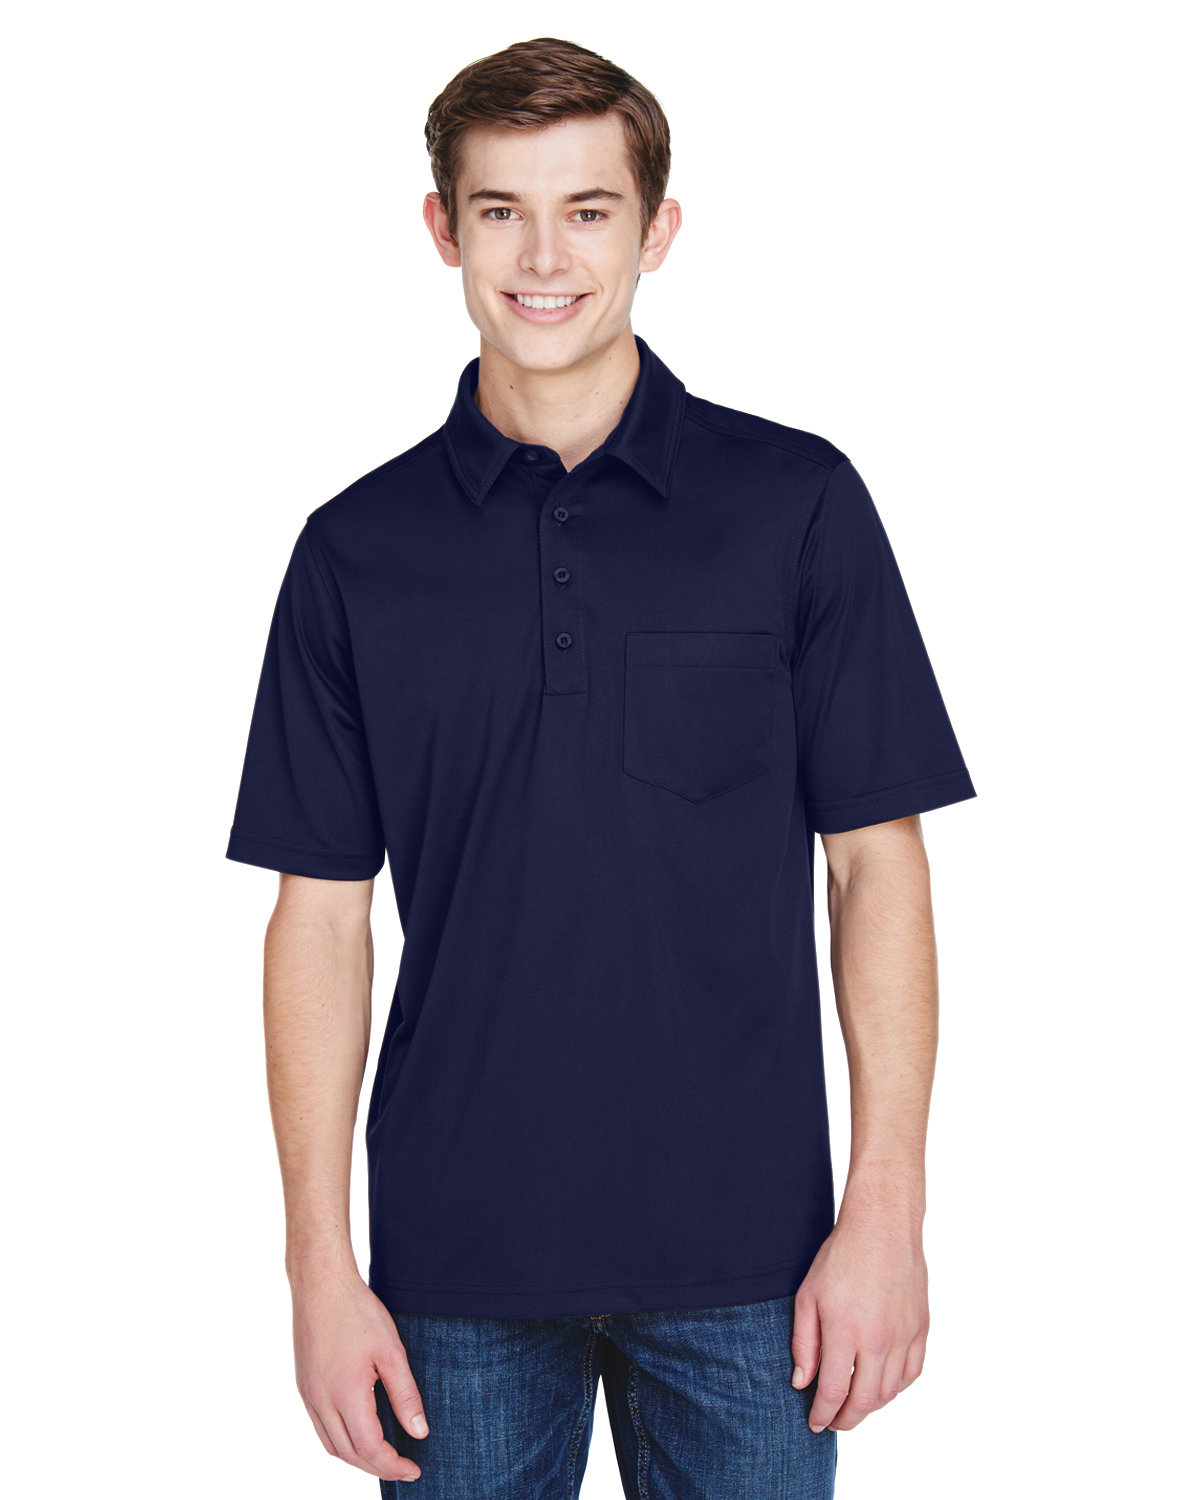 Extreme Men's Tall Eperformance™ Shift Snag Protection Plus Polo CLASSIC NAVY